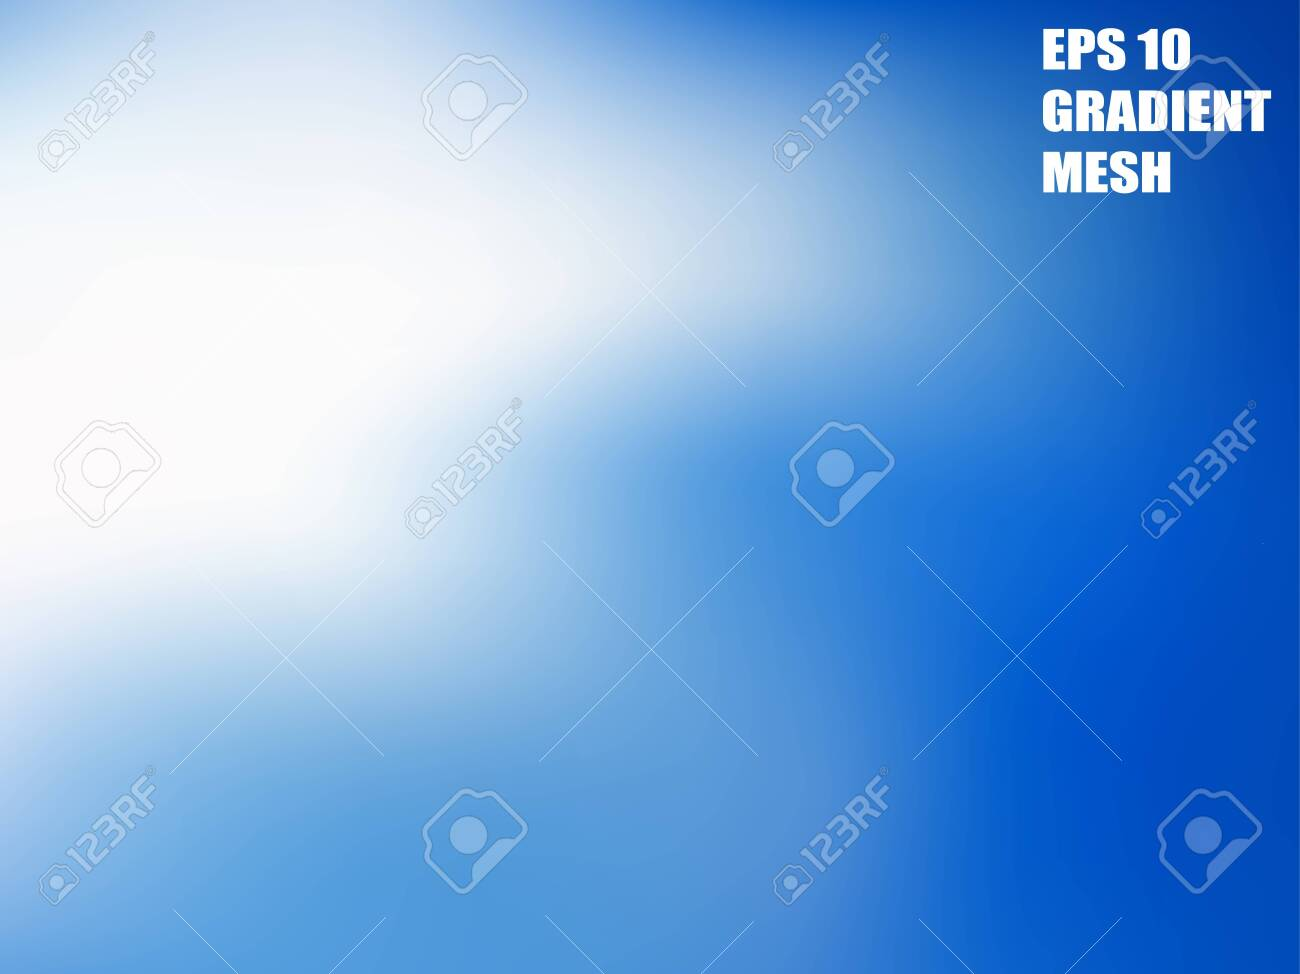 Background gradient blurry mesh abstract in white light and blue sky colors. EPS10. Free editable. - 120741963